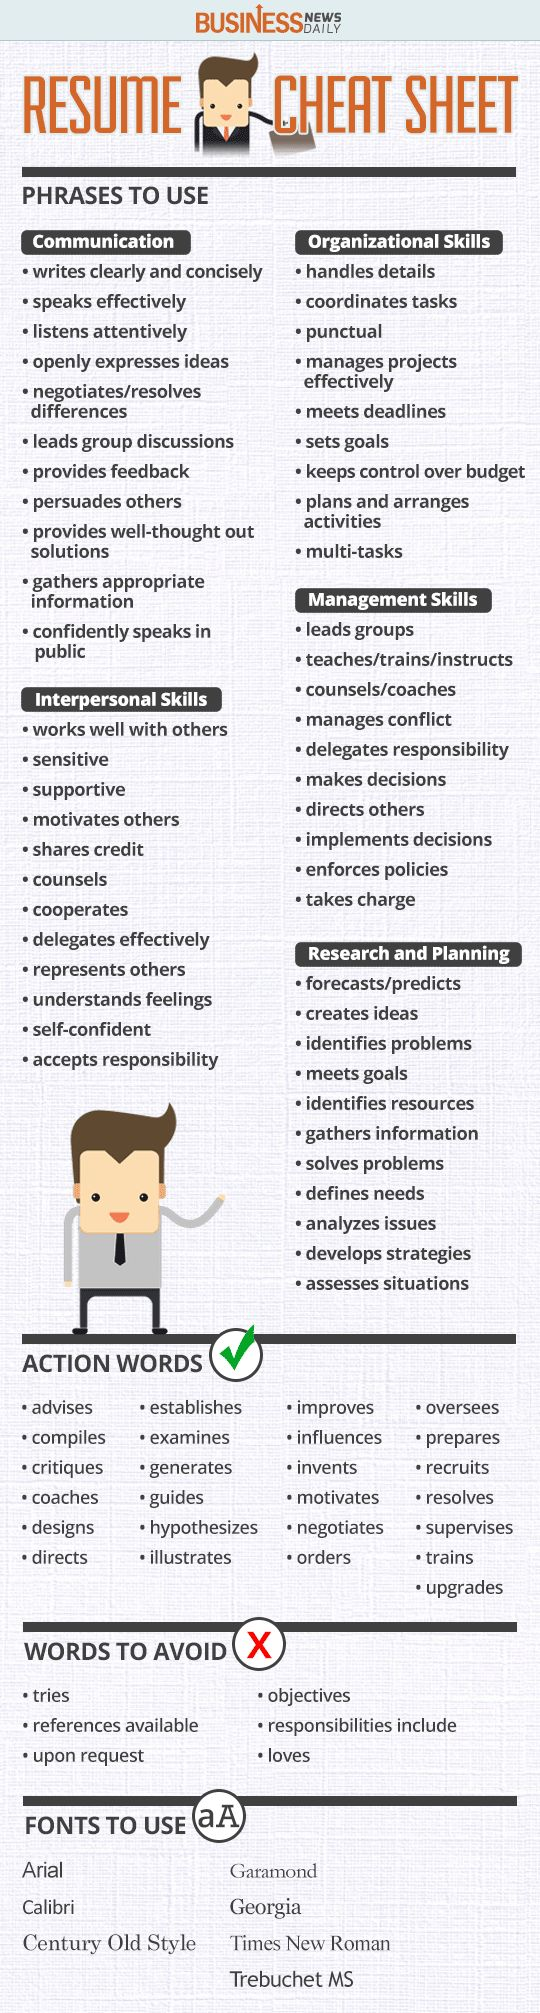 Opposenewapstandardsus  Pleasant  Ideas About Resume On Pinterest  Cv Format Resume  With Luxury Resume Cheat Sheet Infographic Andrews Almost Done With A Complete Unit On Employment Which With Adorable Forklift Resume Sample Also Resume For Student With No Experience In Addition Medical Billing Specialist Resume And Resume Skills Customer Service As Well As Is Resume Paper Necessary Additionally Resume For Recent High School Graduate From Pinterestcom With Opposenewapstandardsus  Luxury  Ideas About Resume On Pinterest  Cv Format Resume  With Adorable Resume Cheat Sheet Infographic Andrews Almost Done With A Complete Unit On Employment Which And Pleasant Forklift Resume Sample Also Resume For Student With No Experience In Addition Medical Billing Specialist Resume From Pinterestcom